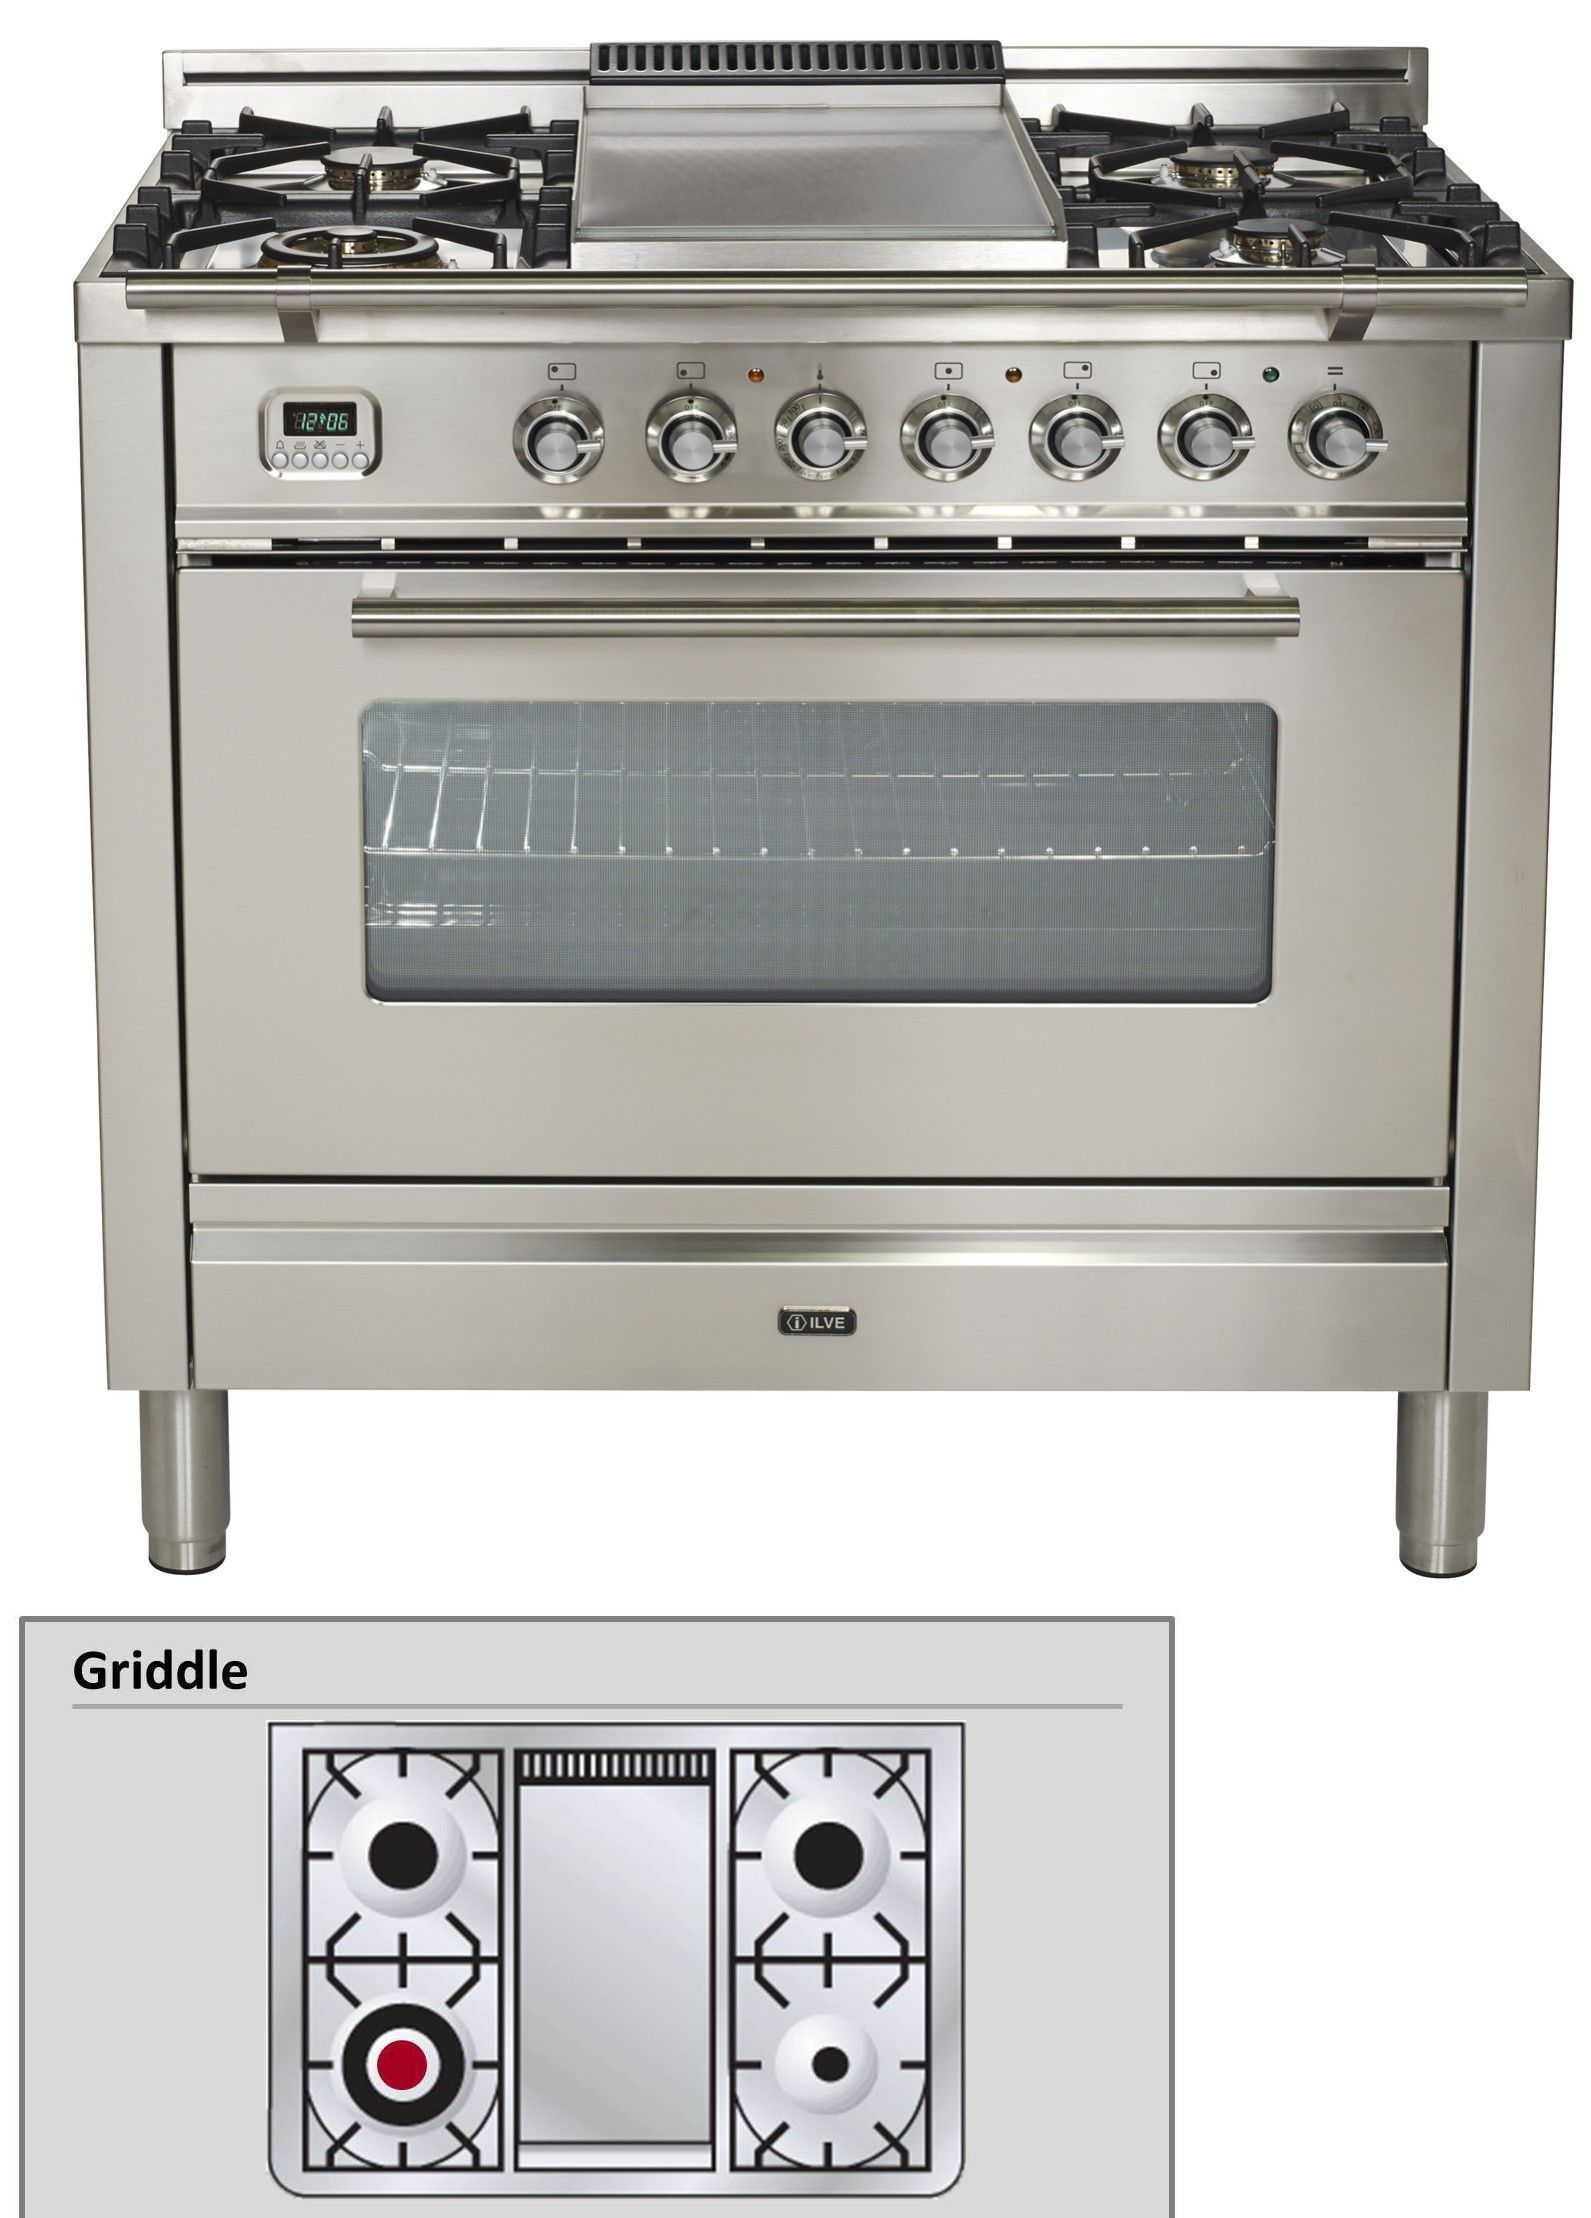 Ranges And Stoves 71250 Ilve Upw90fdmpi Pro Series 36 Dual Fuel Range Oven Griddle Stainless Steel Buy It Now Only 4299 Dual Fuel Ranges Oven Range Ilve